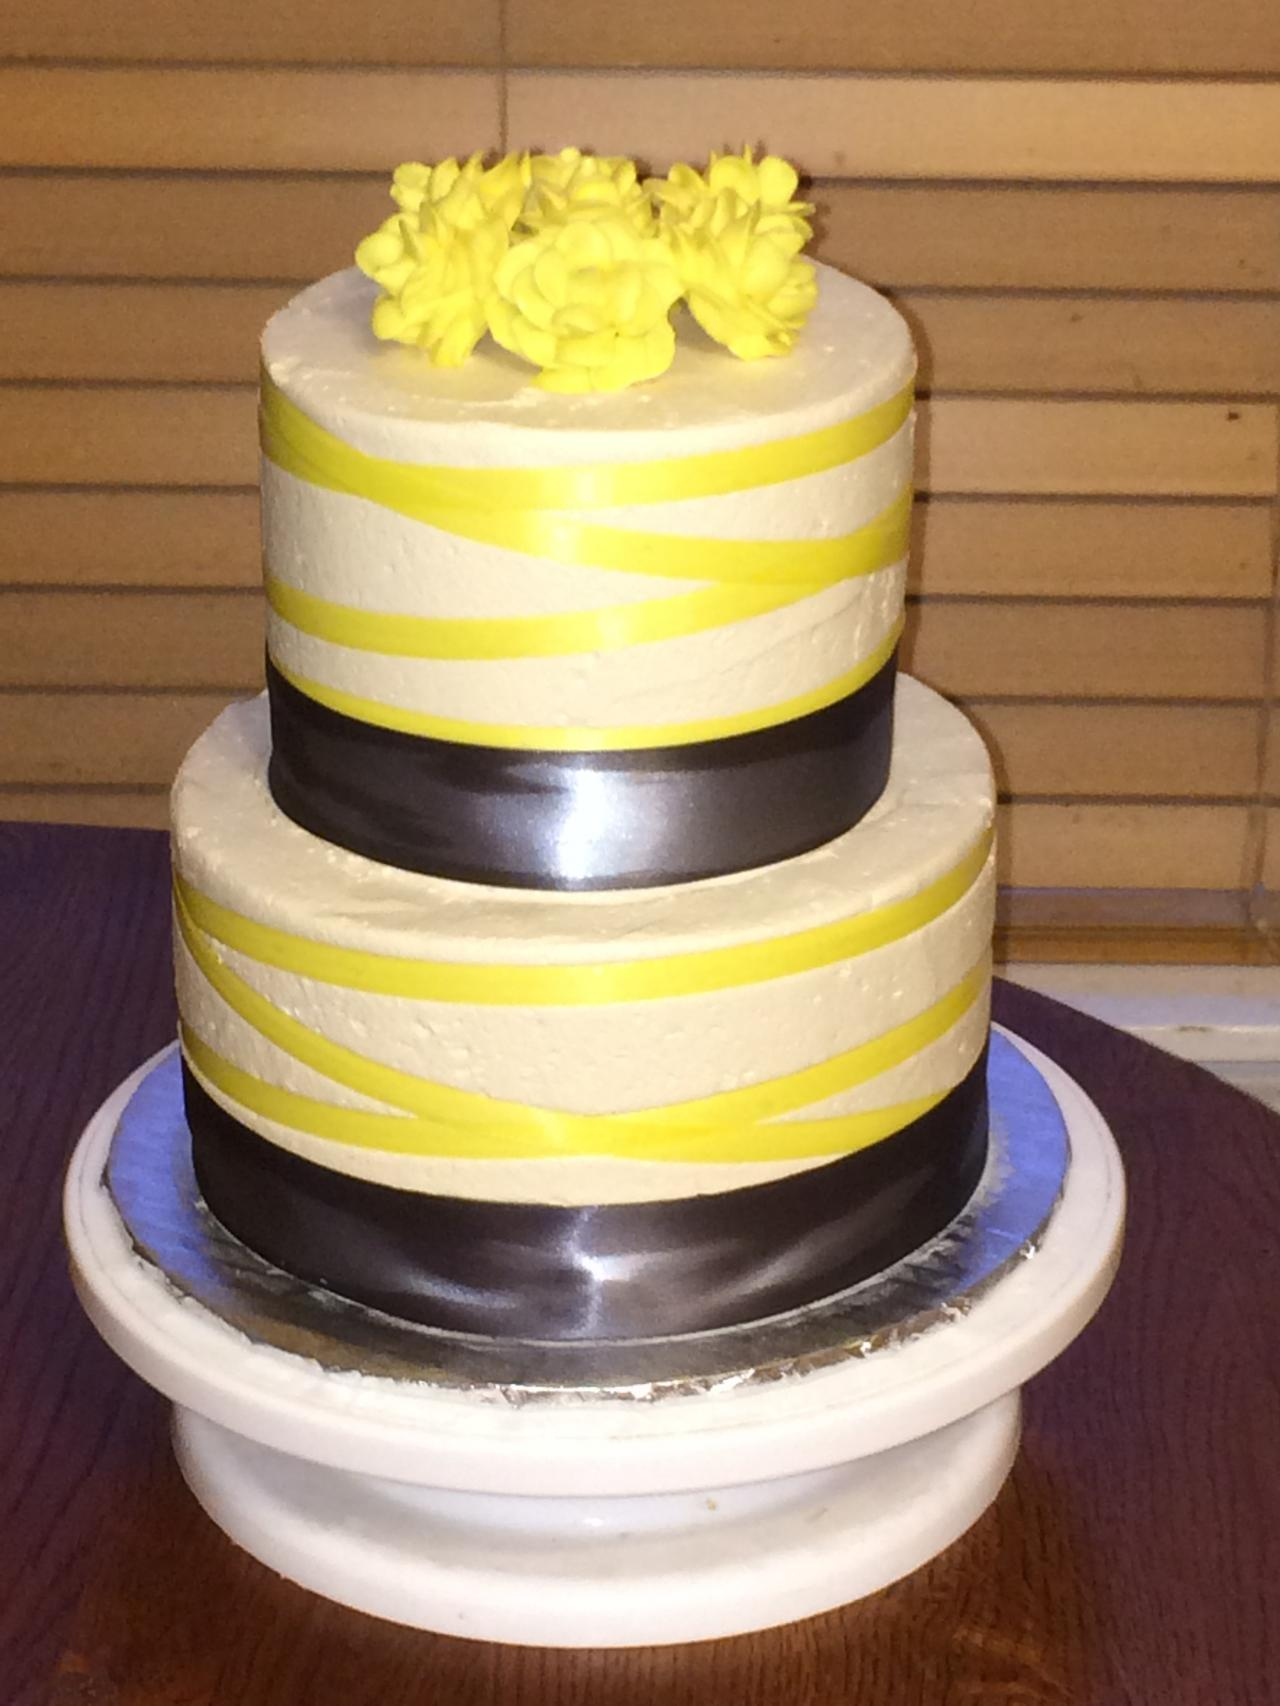 Creative Cakes & Confections - Weddings